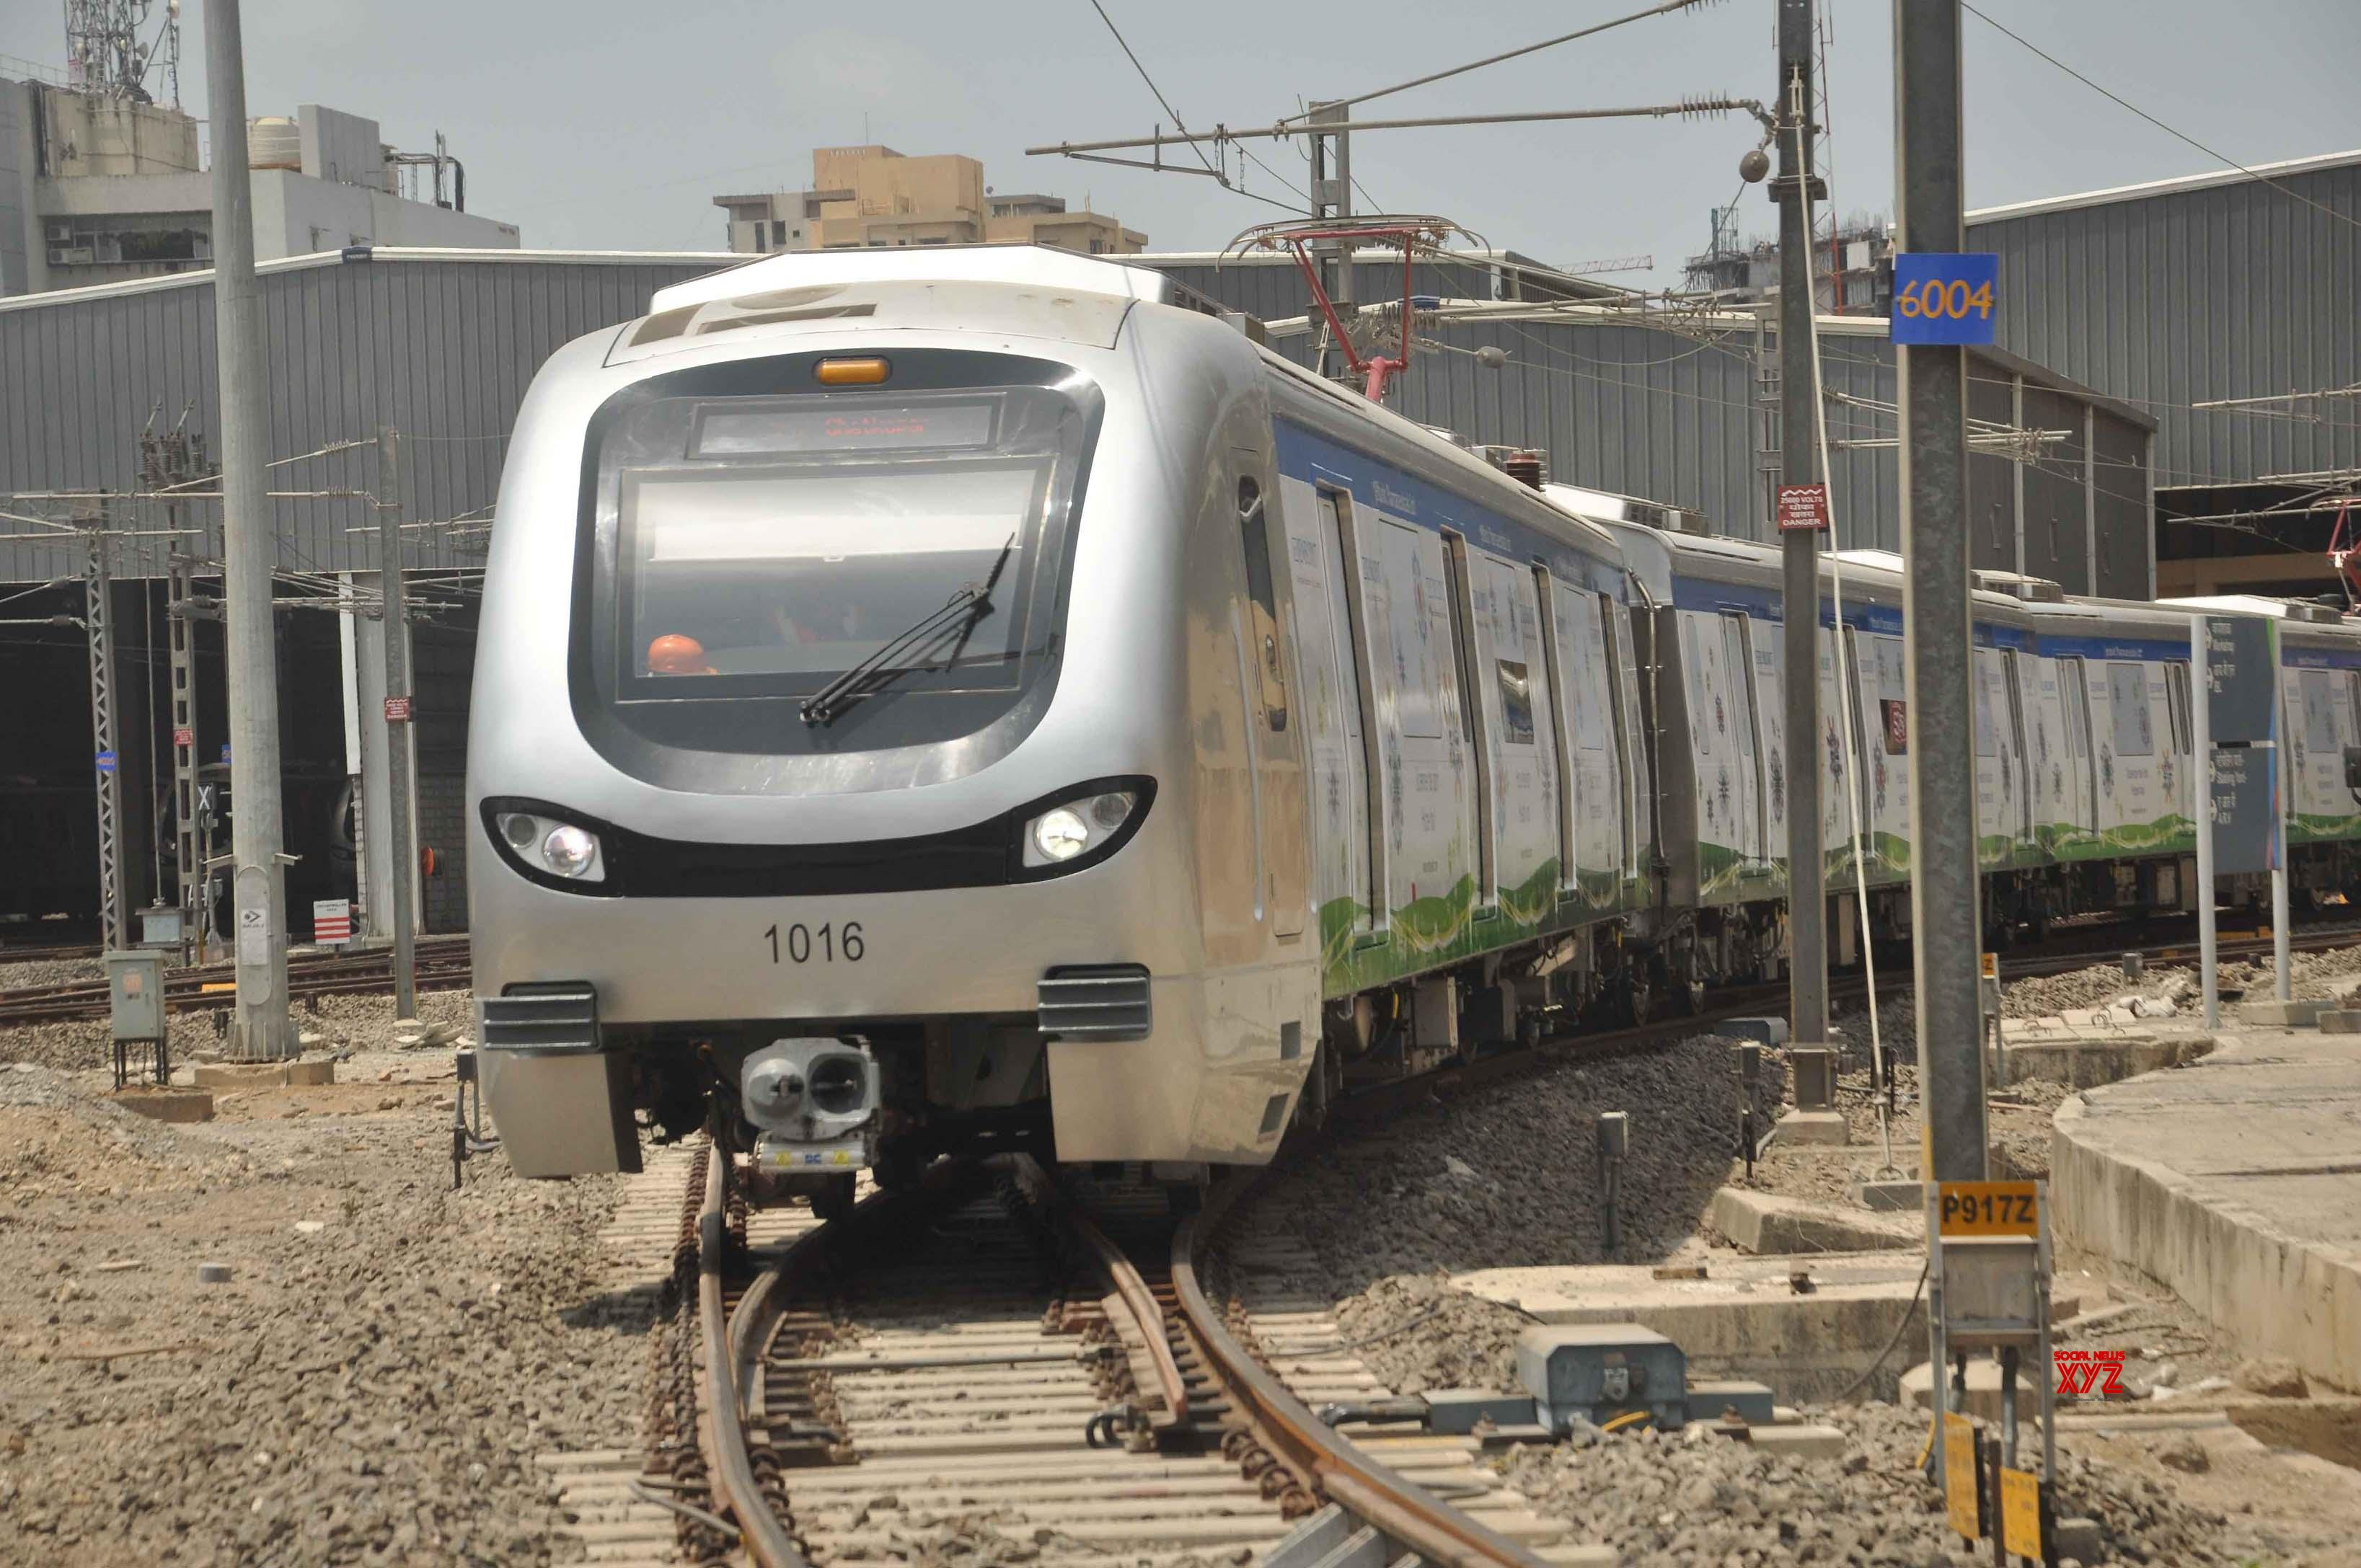 Three needs of Indian infrastructure: Revenues, revenues & revenues